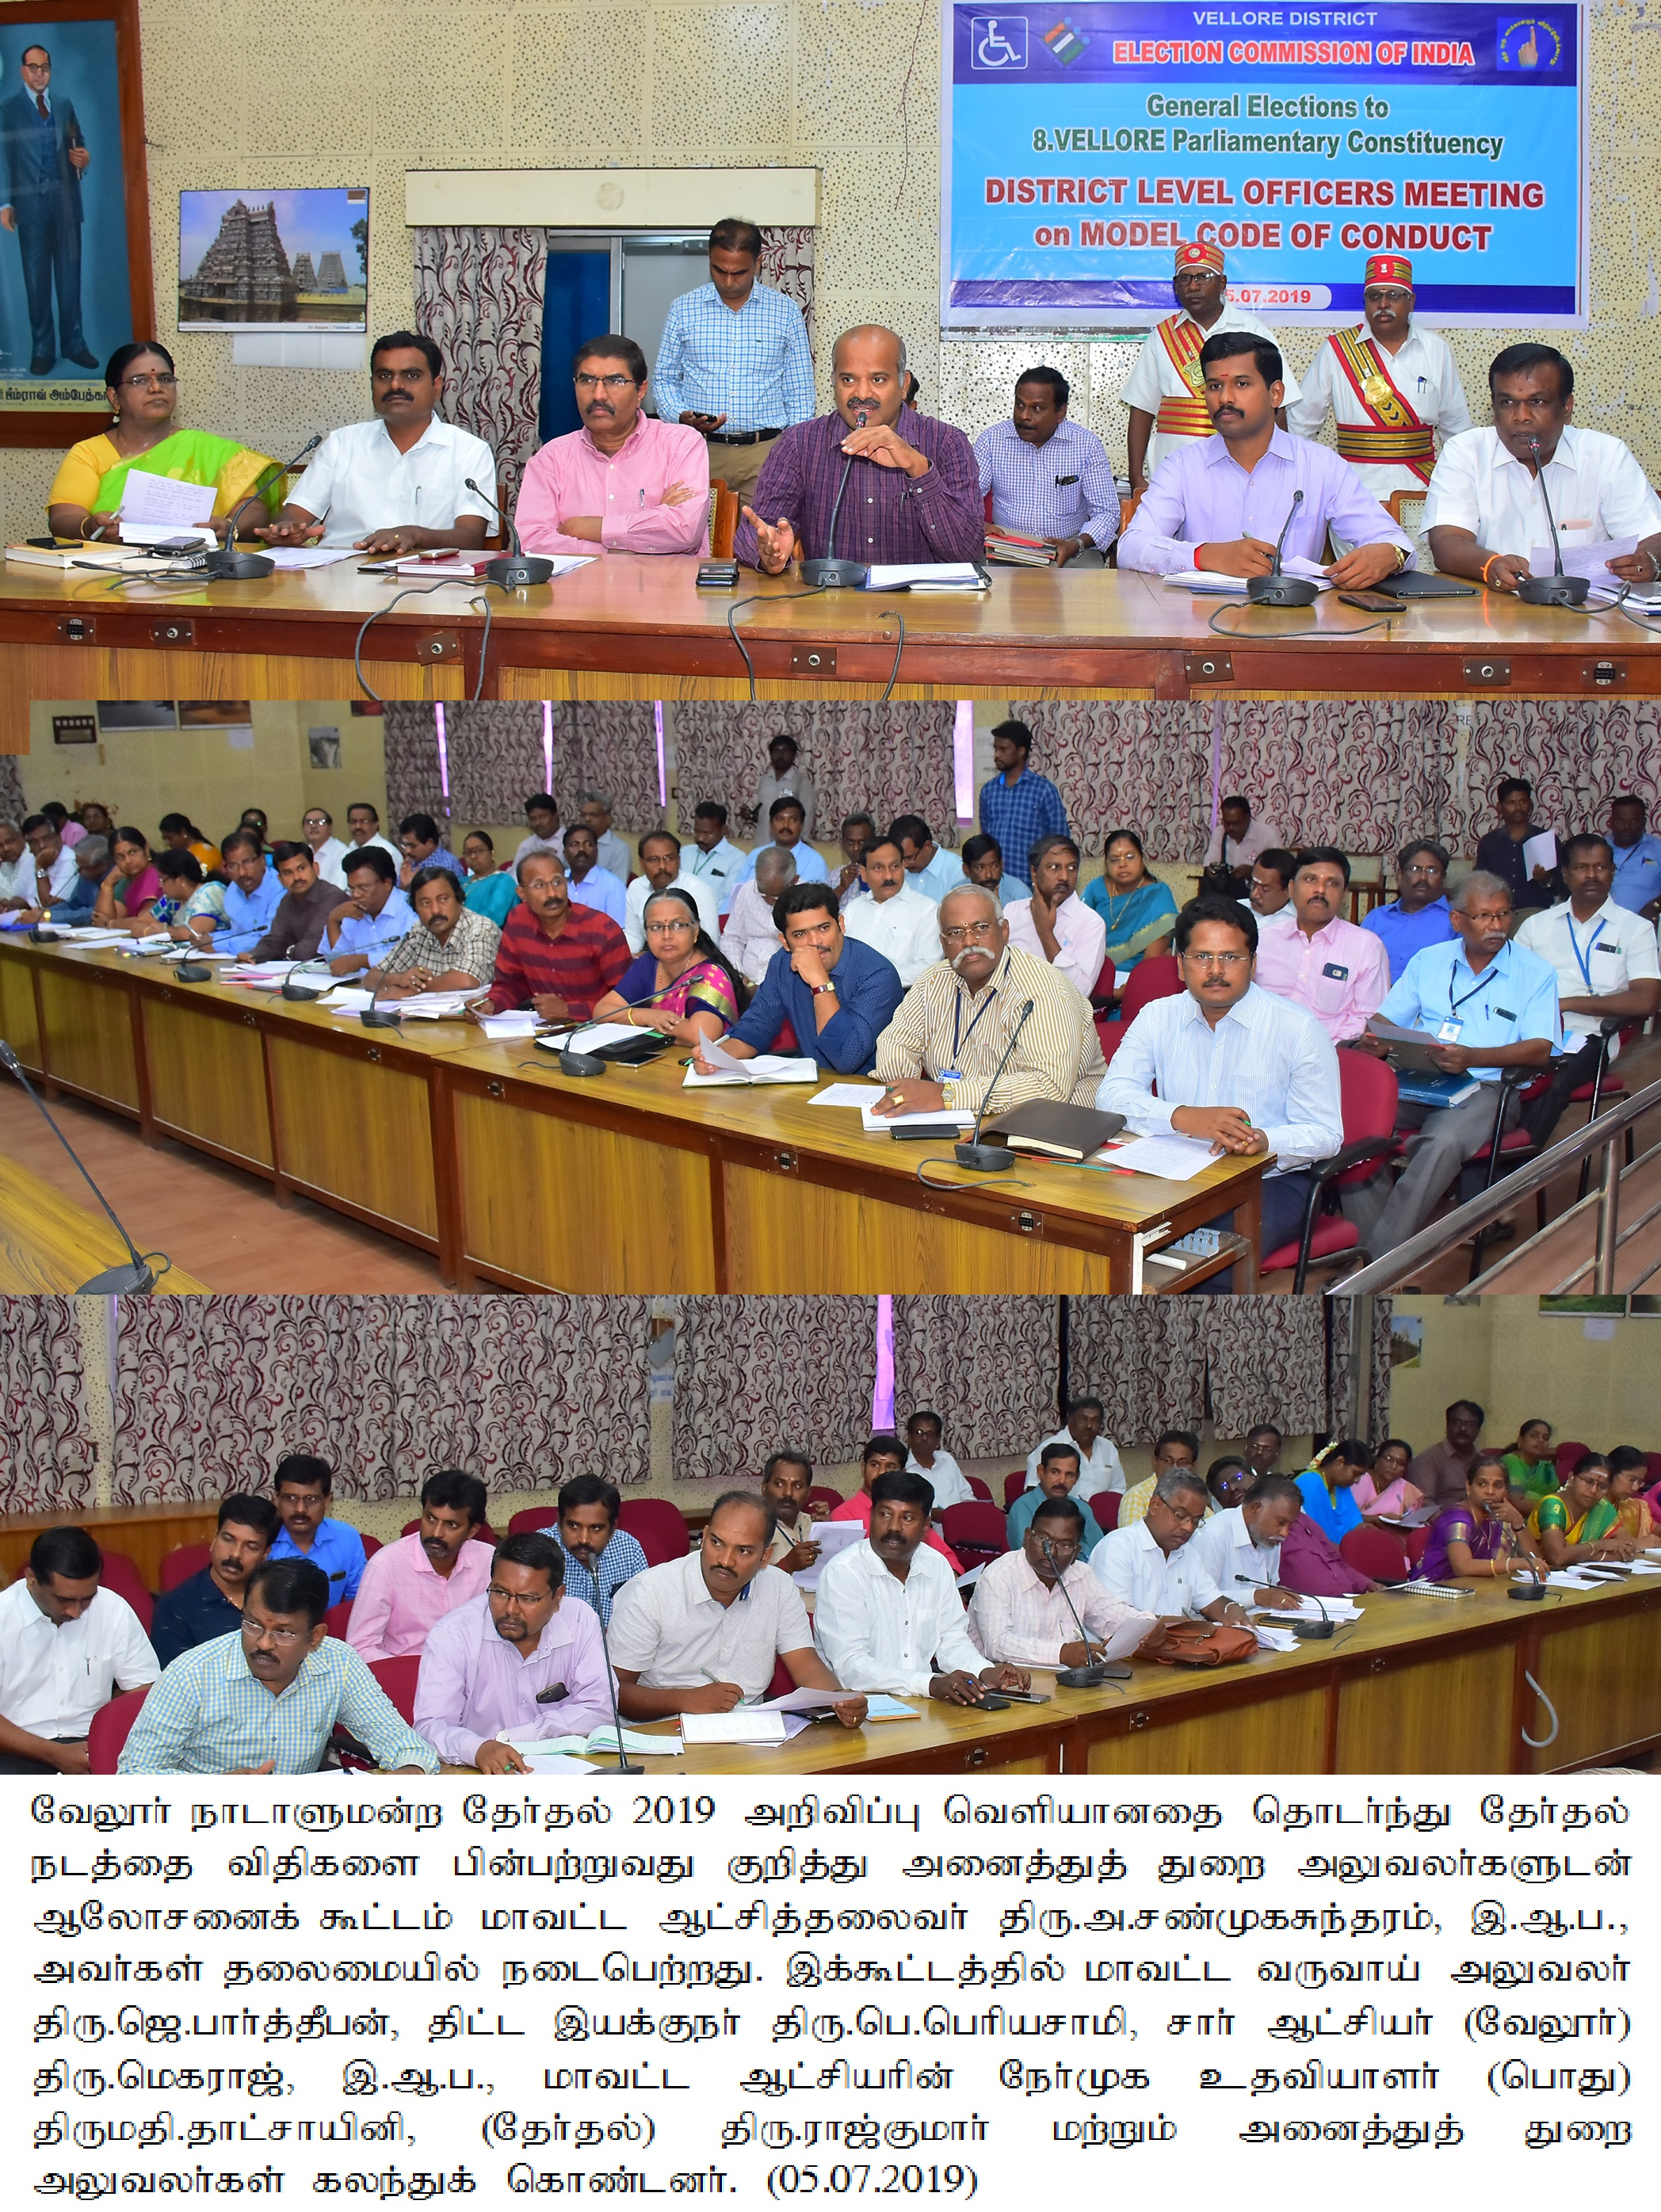 District level officers meeting regarding Model Code of Conduct